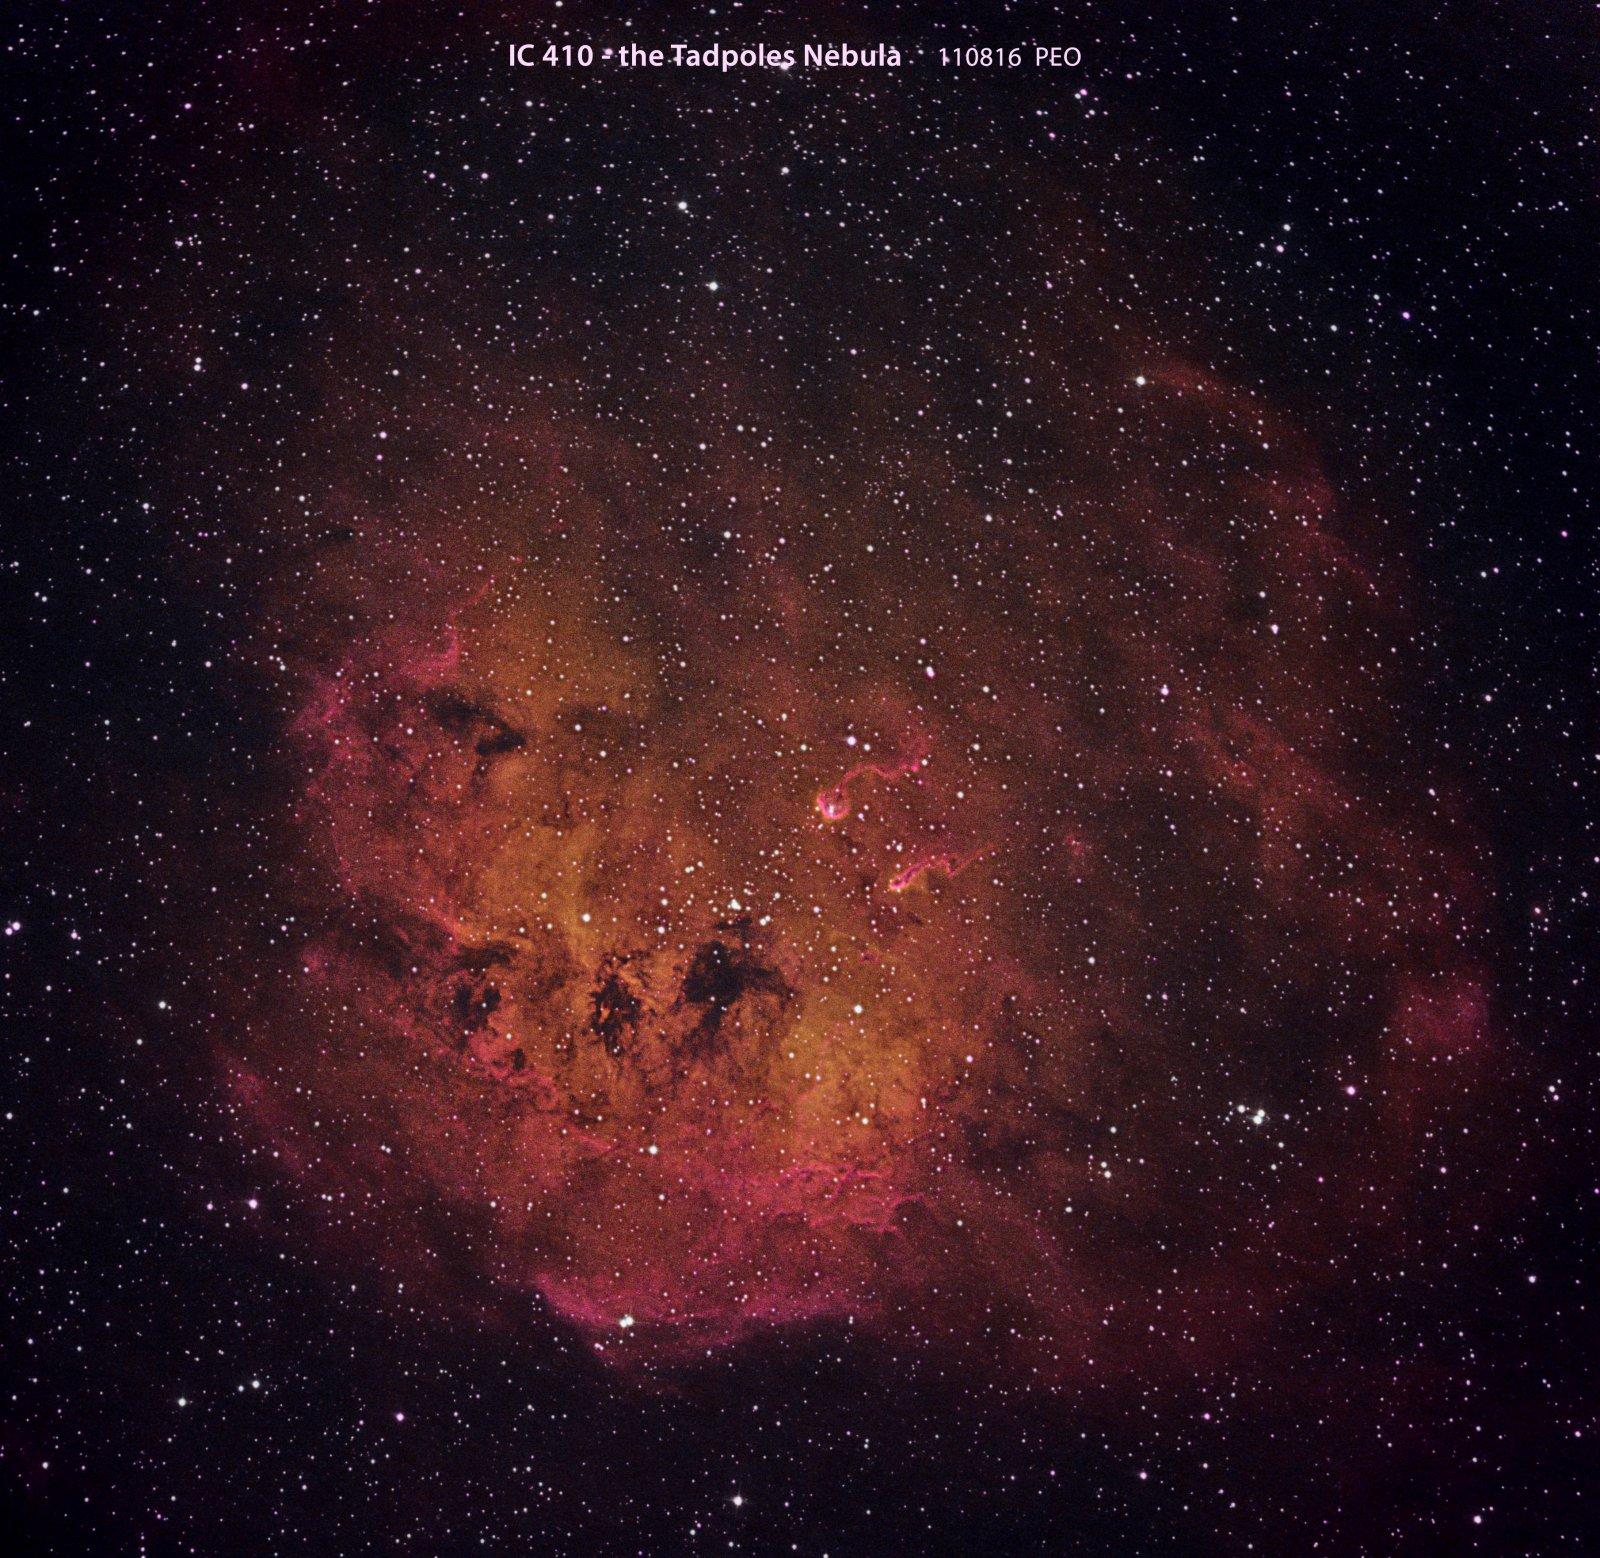 IC410, the Tadpoles Nebula